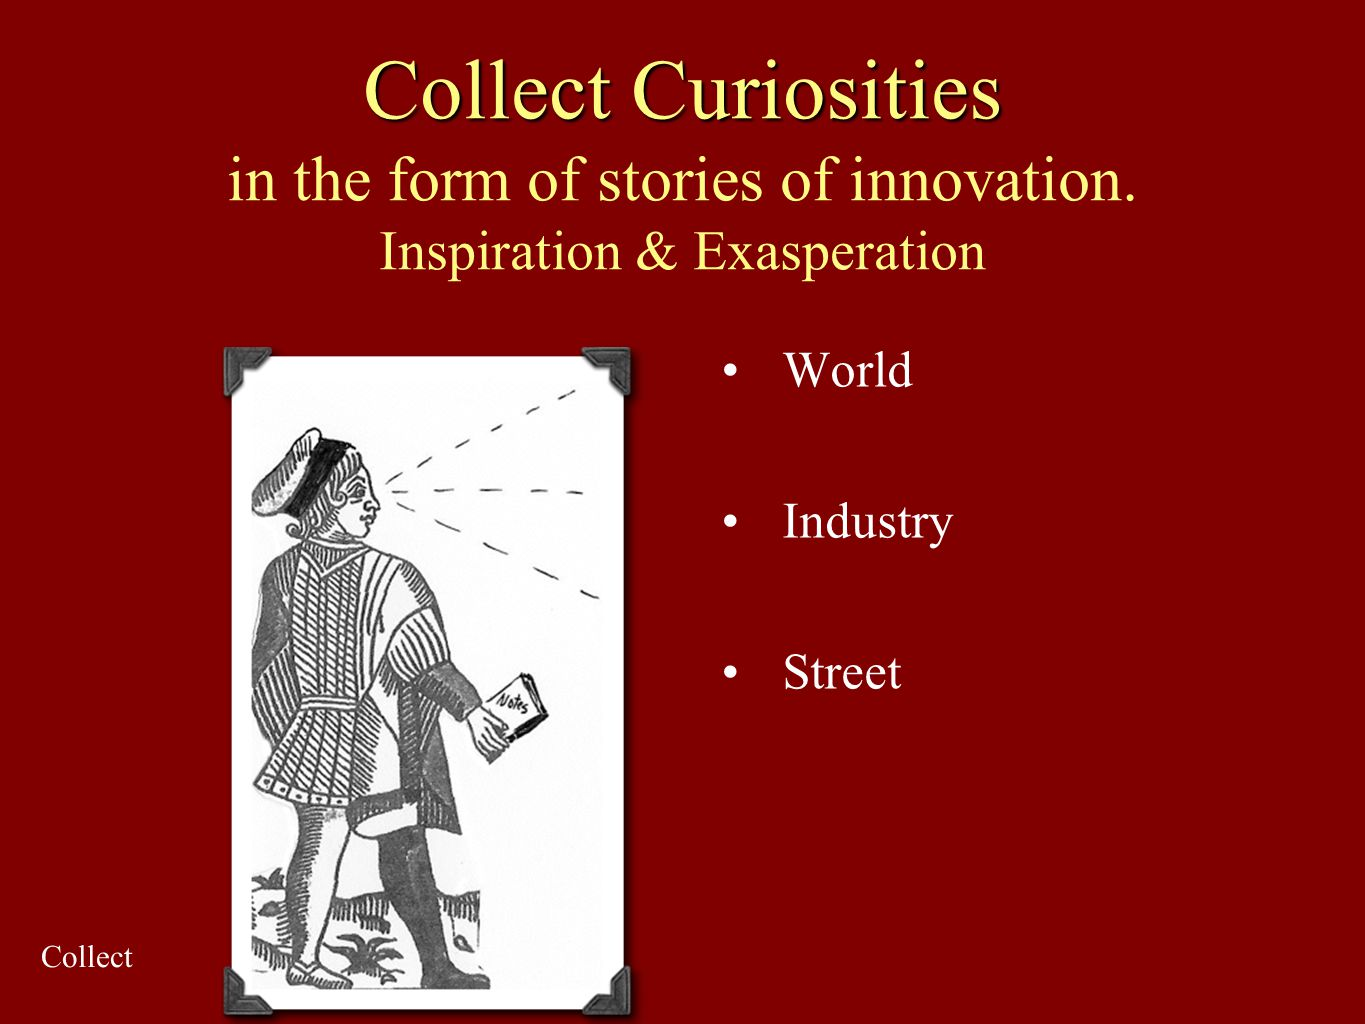 Collect Curiosities in the form of stories of innovation